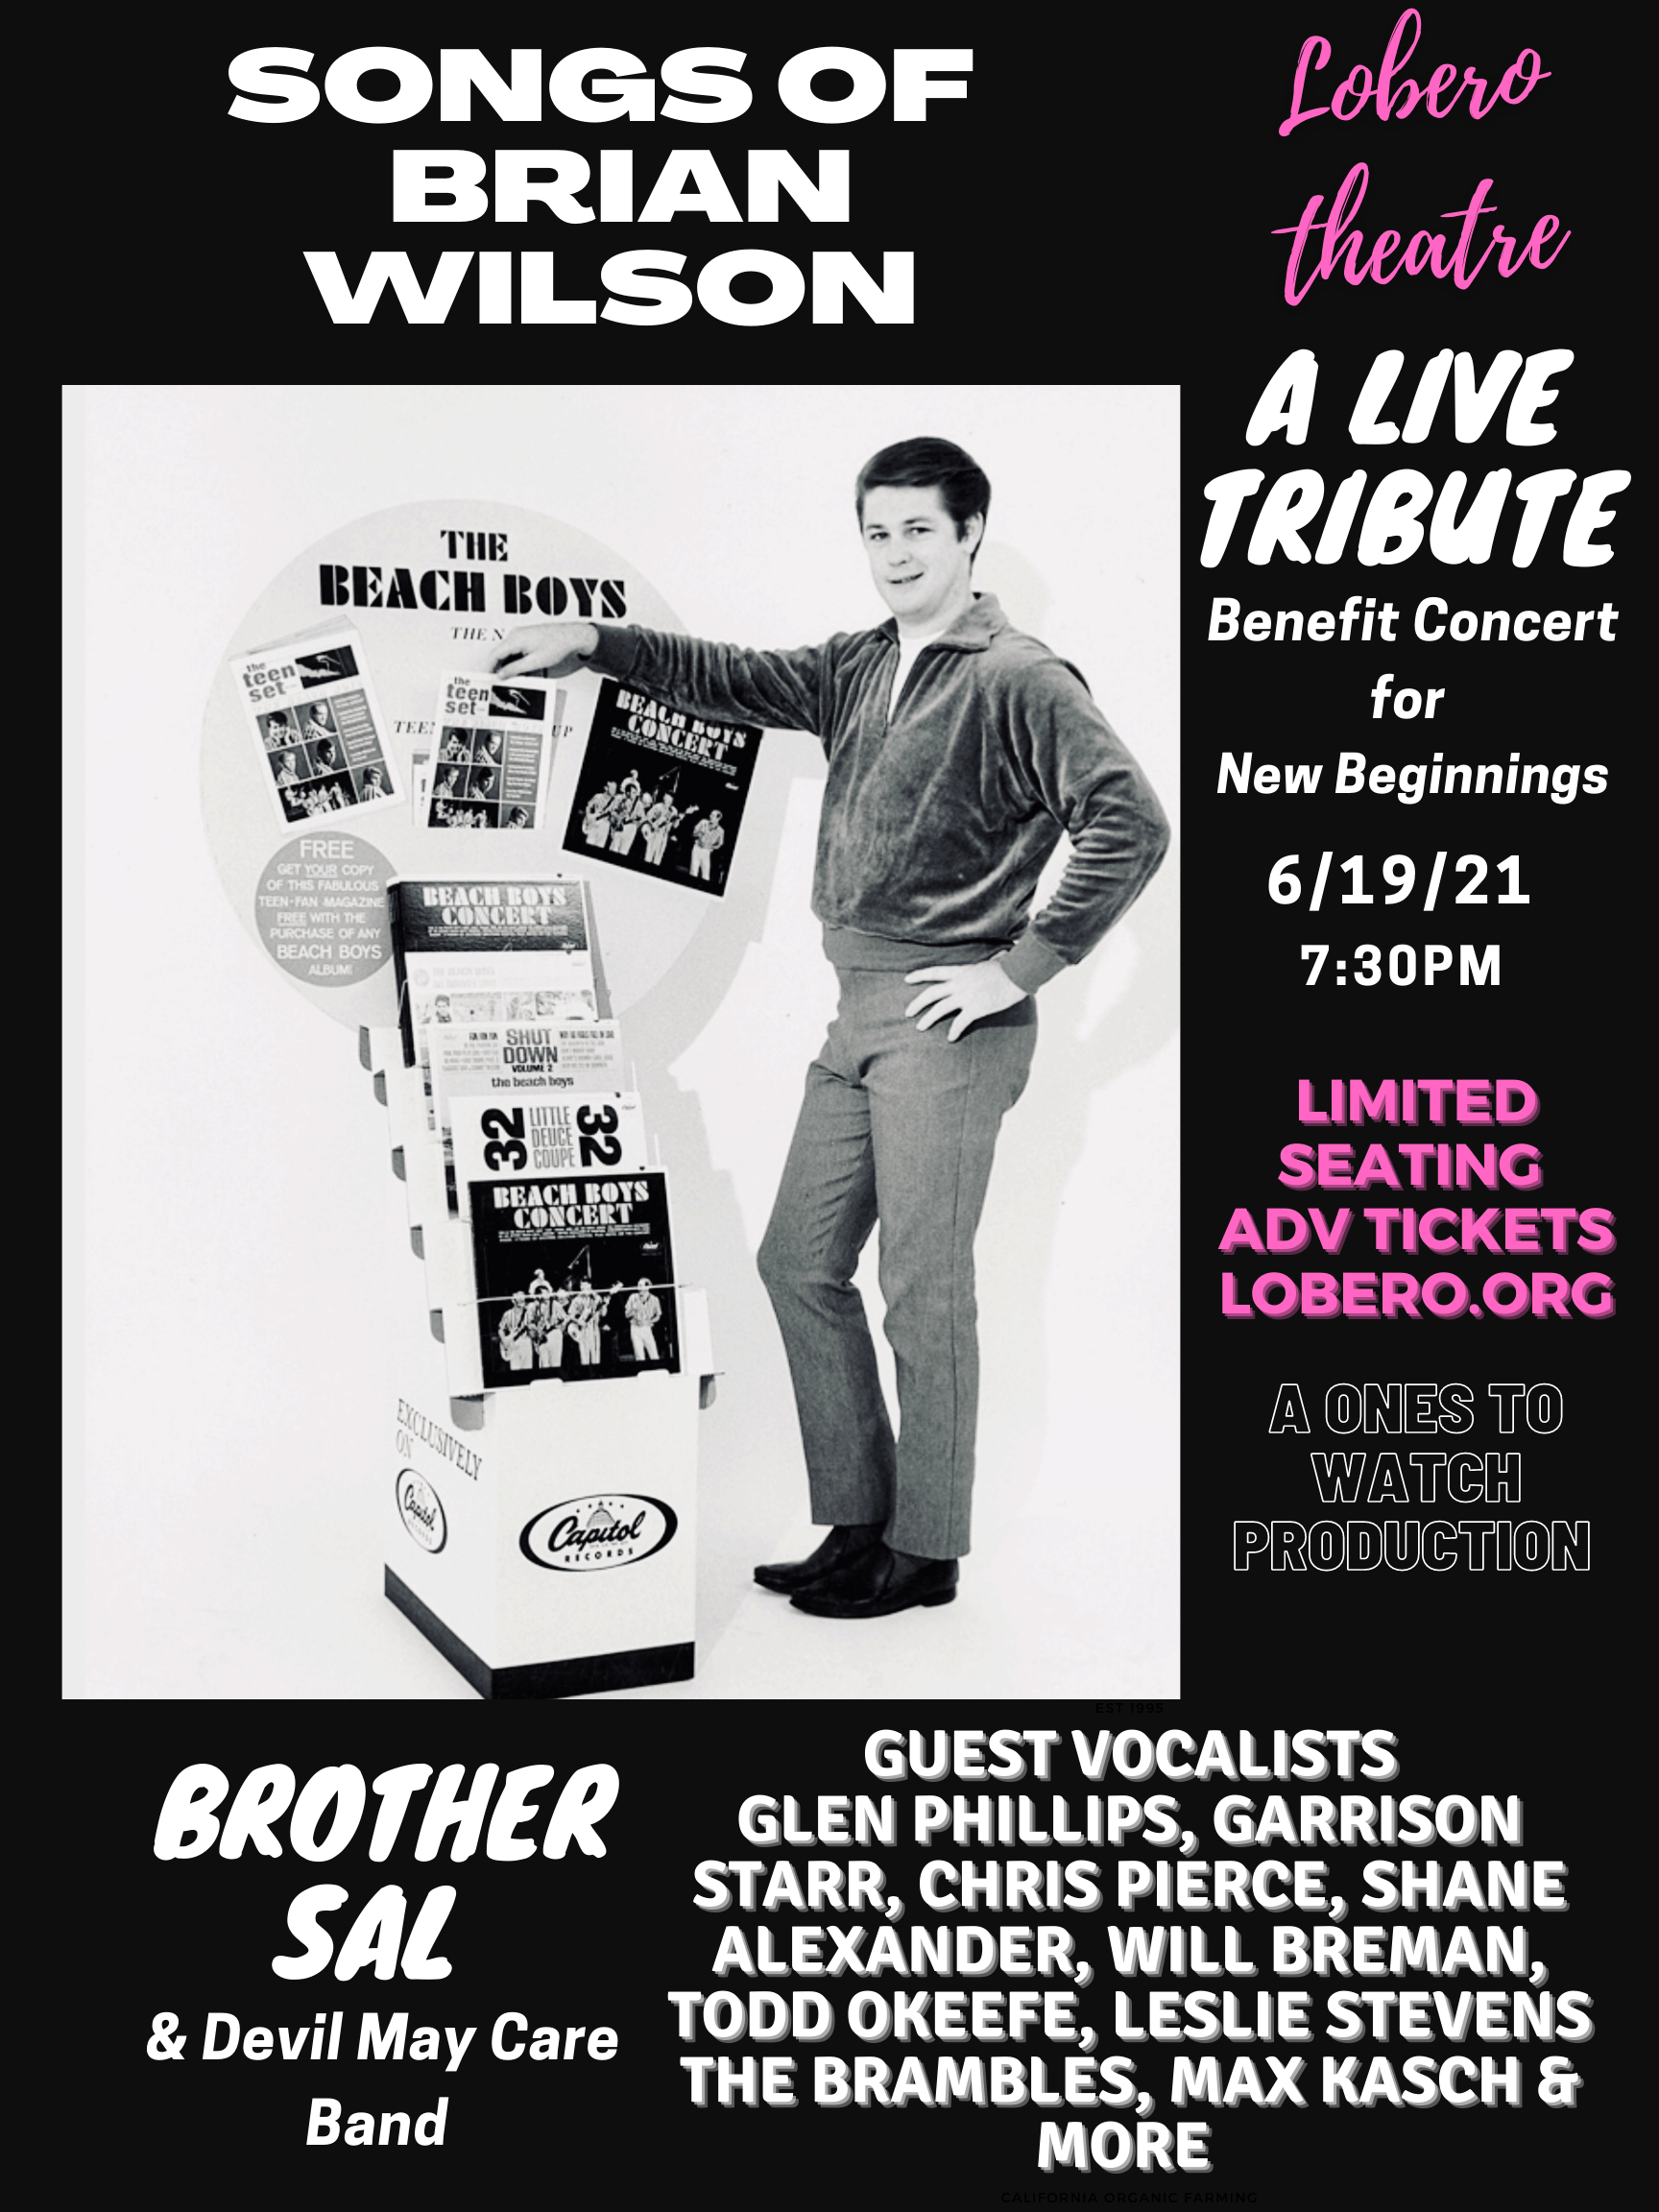 Songs of Brian Wilson Event Flyer